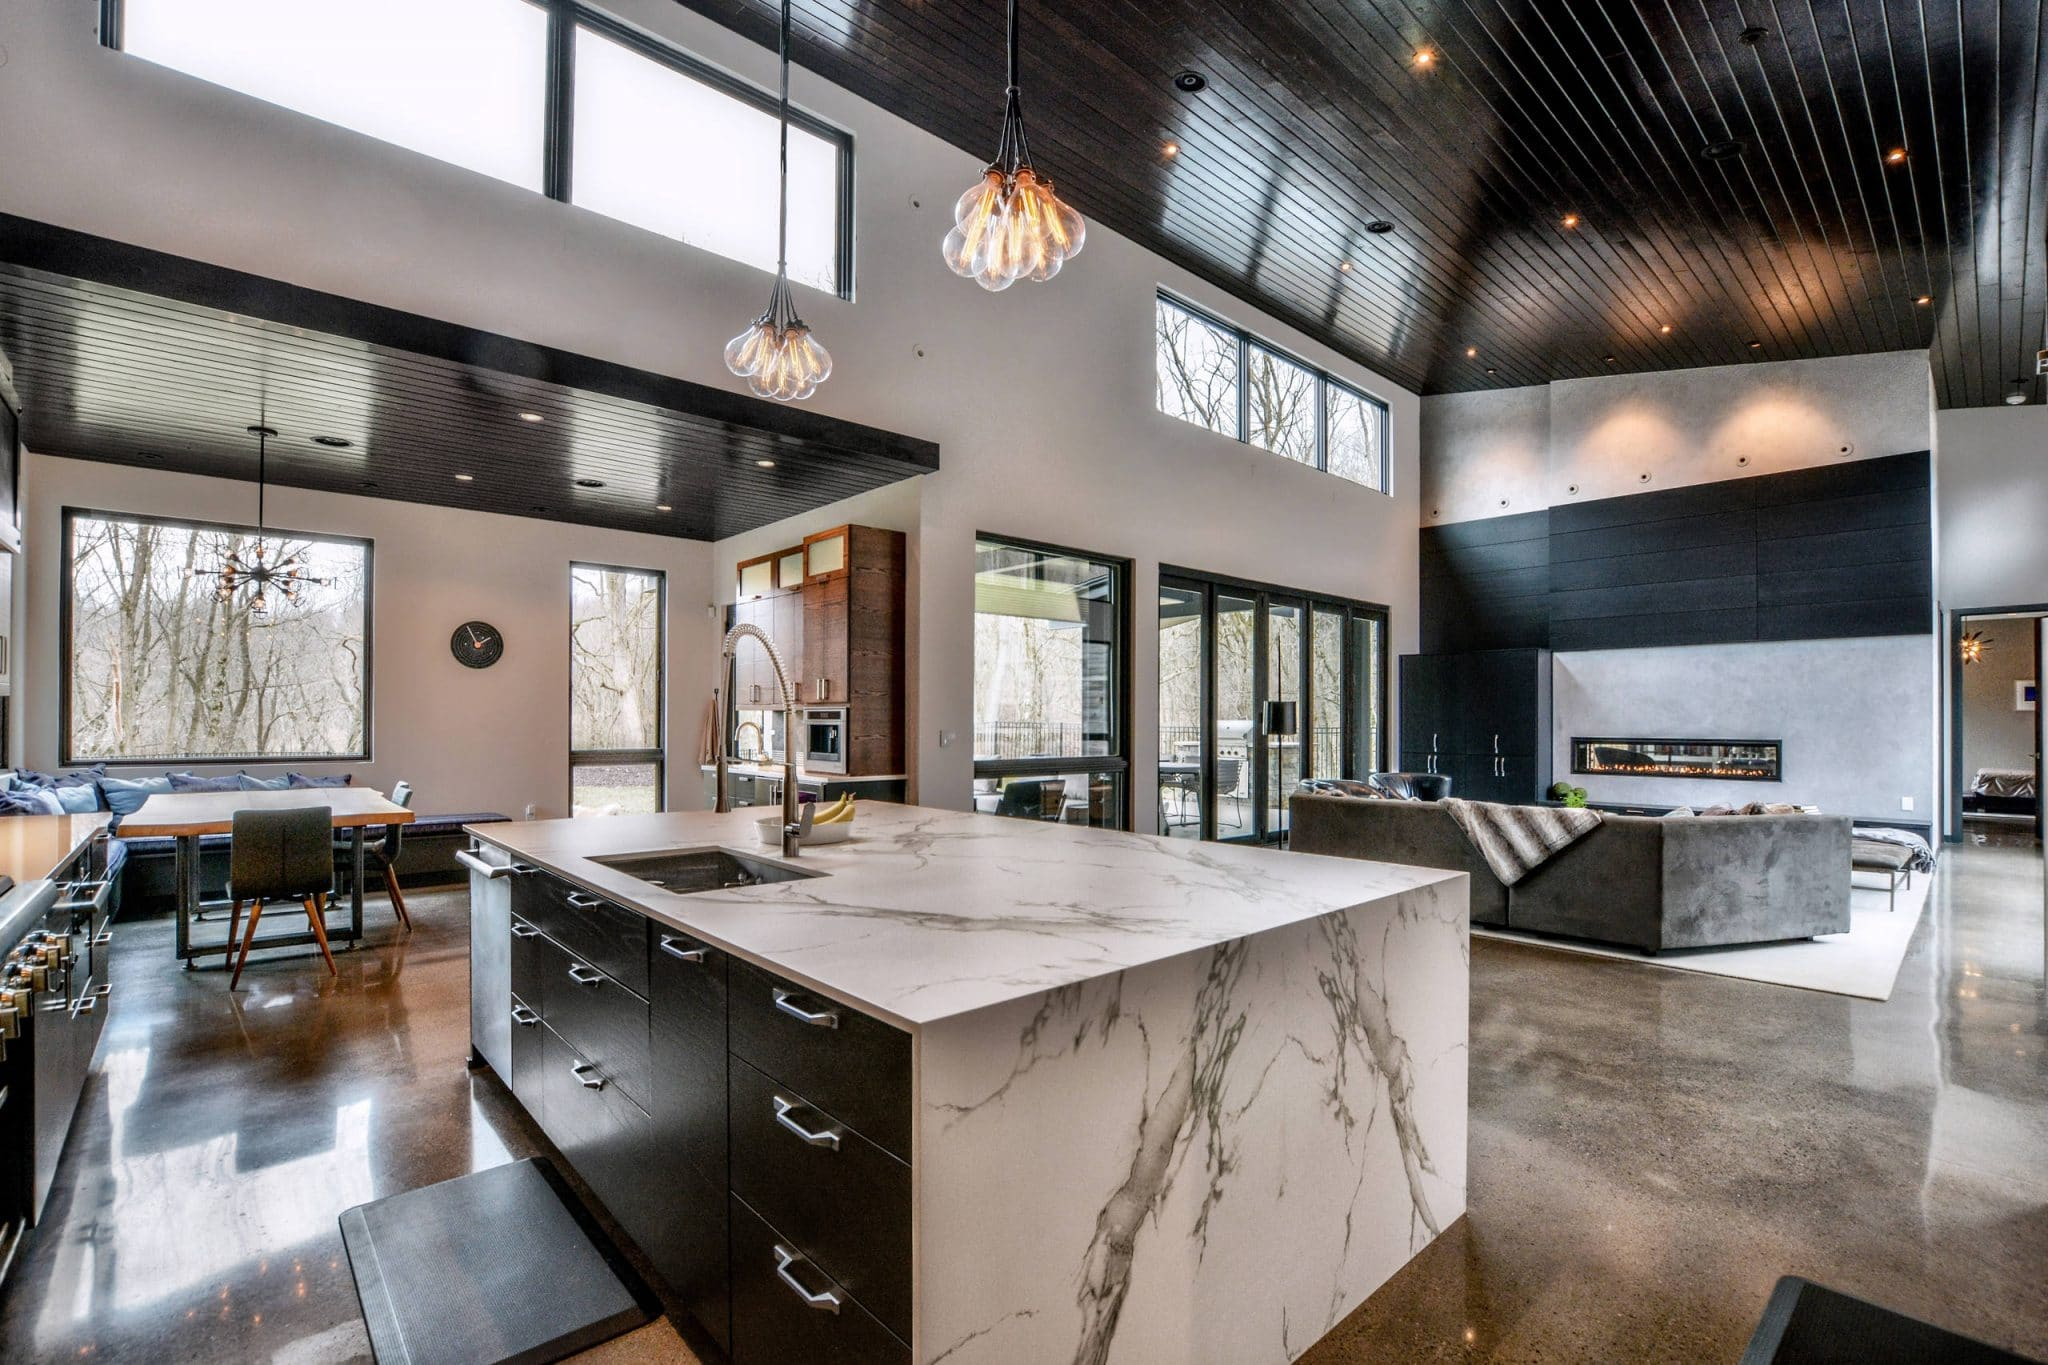 Ultimate Kitchen Features - Best Online Cabinets